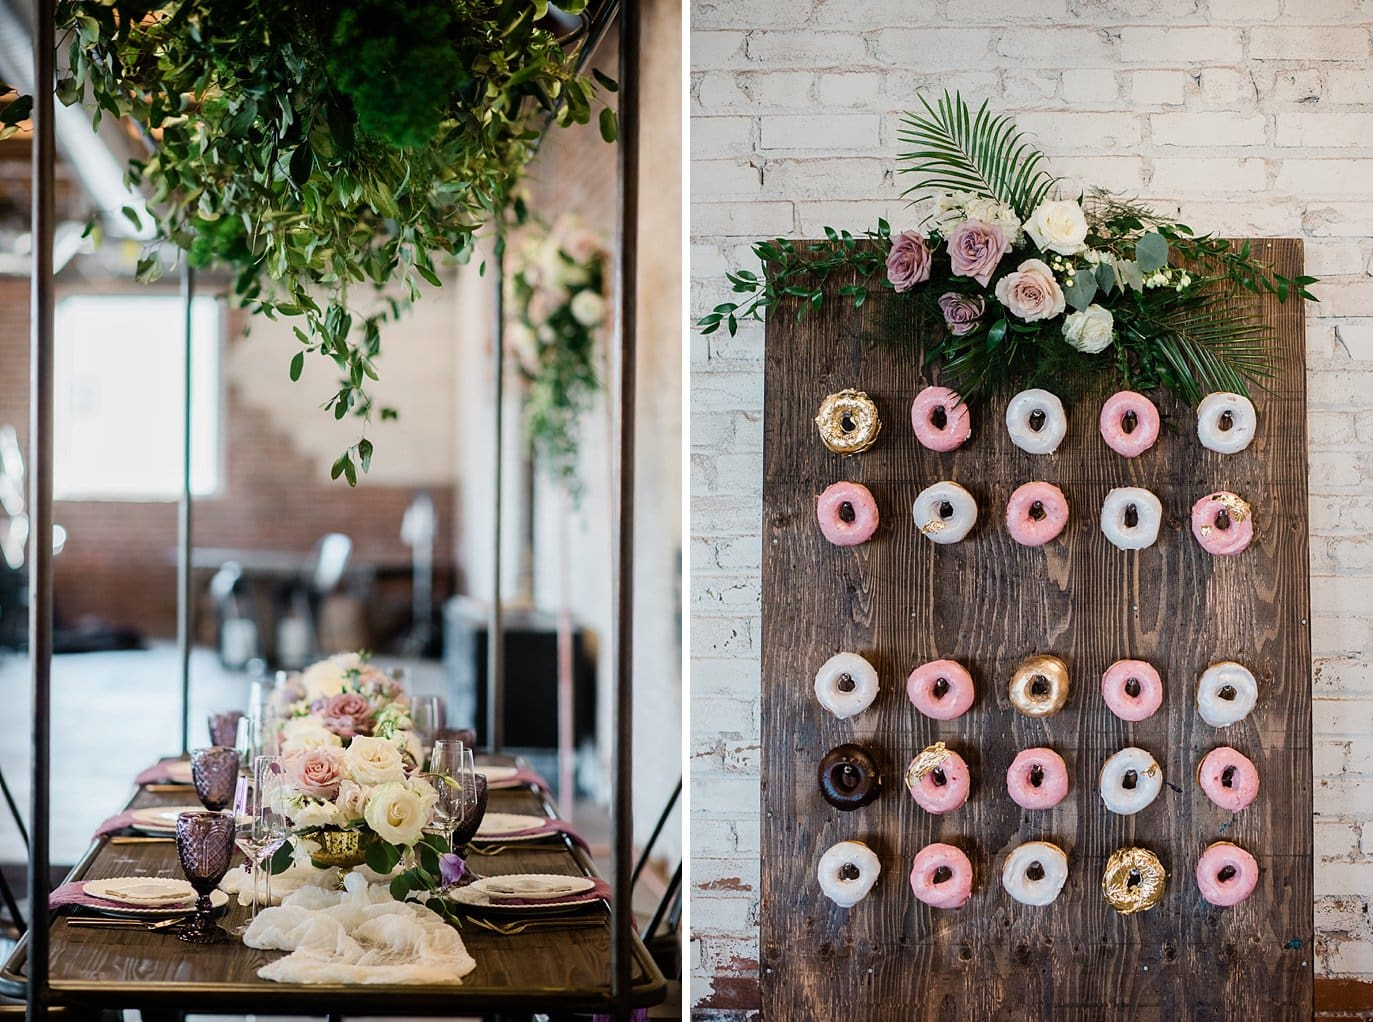 hanging greenery on head wedding table and standing donut wall at Shyft Denver wedding by Lyons wedding photographer Jennie Crate